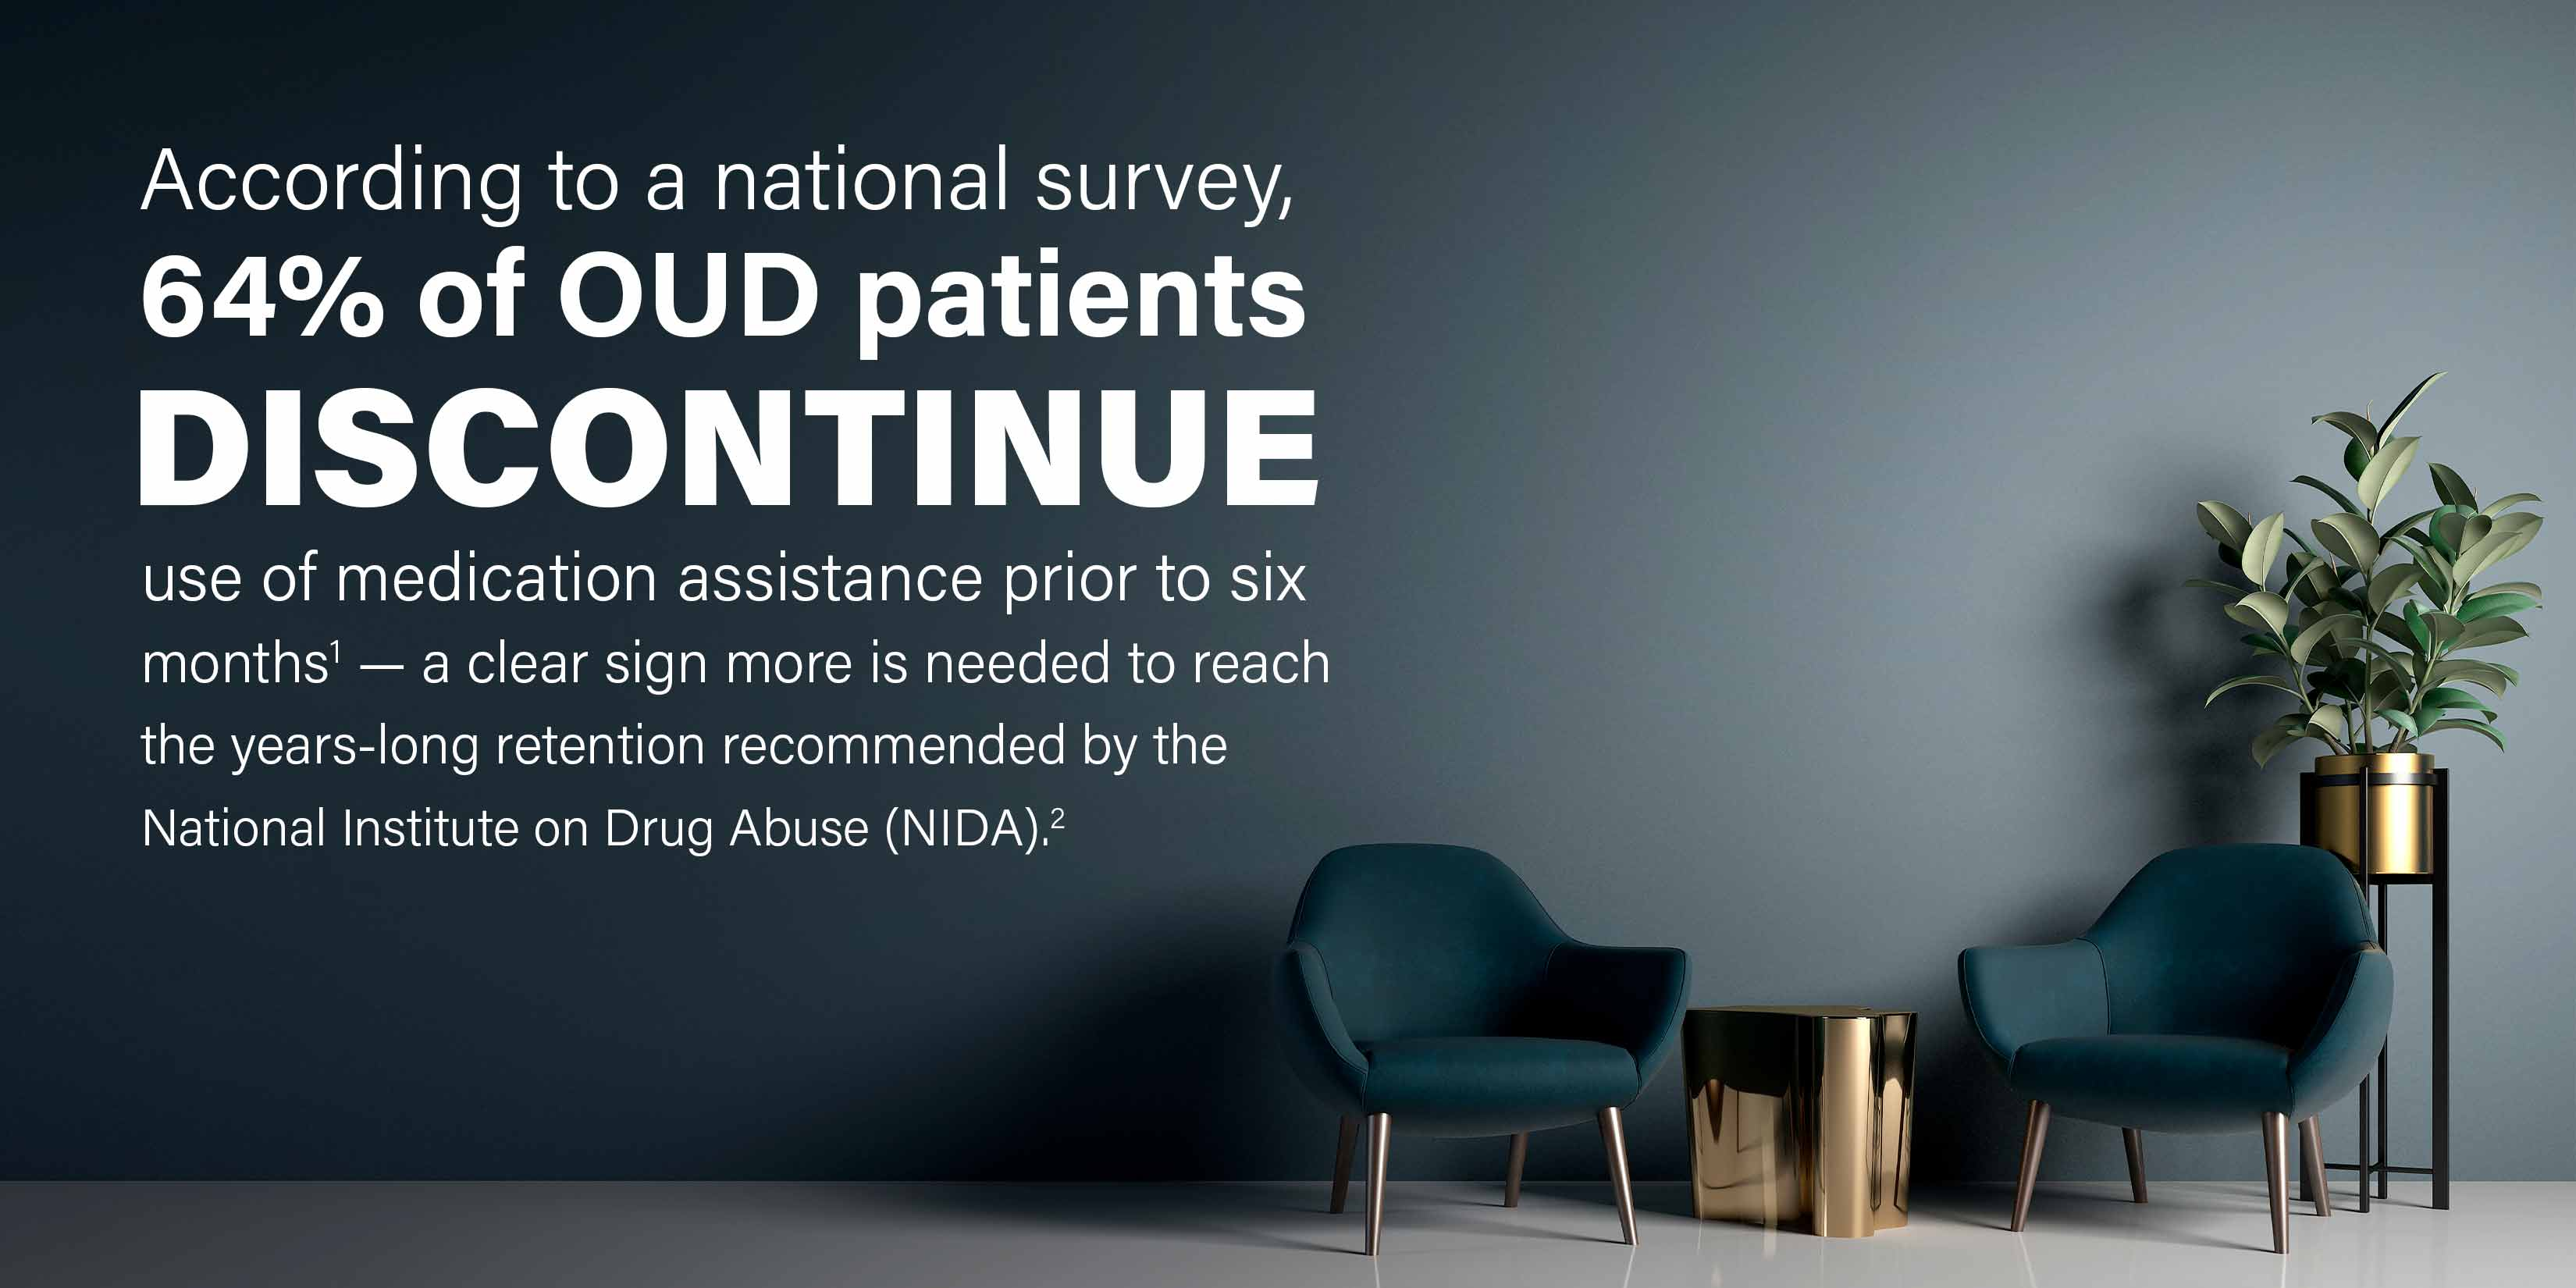 According to a national survey, 64% of OUD patients discontinue use of medication assistance prior to six months[1] — a clear sign more is needed to reach the years-long retention recommended by the National Institute on Drug Abuse (NIDA).[2]